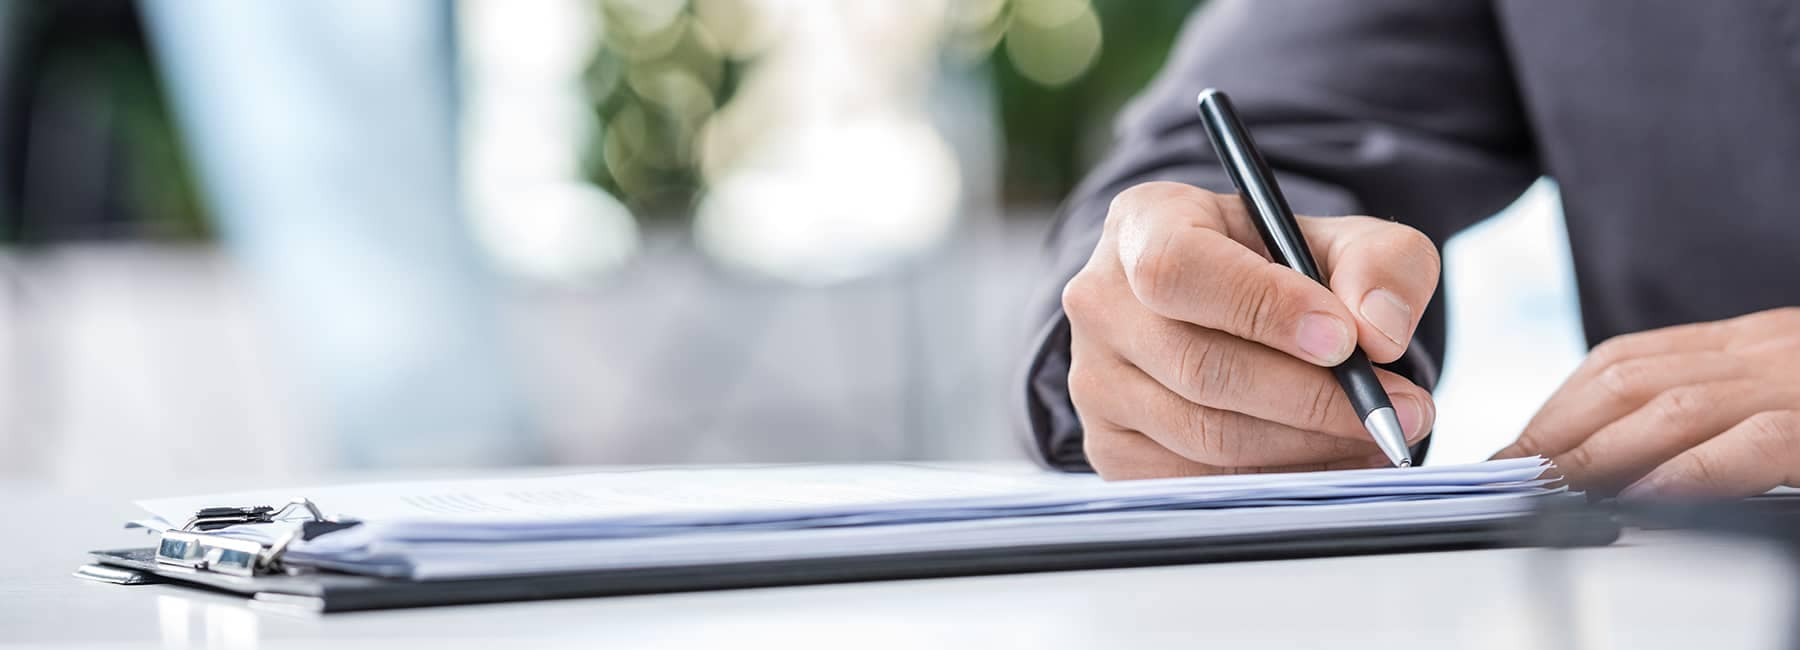 Finance Banner - Signing papers